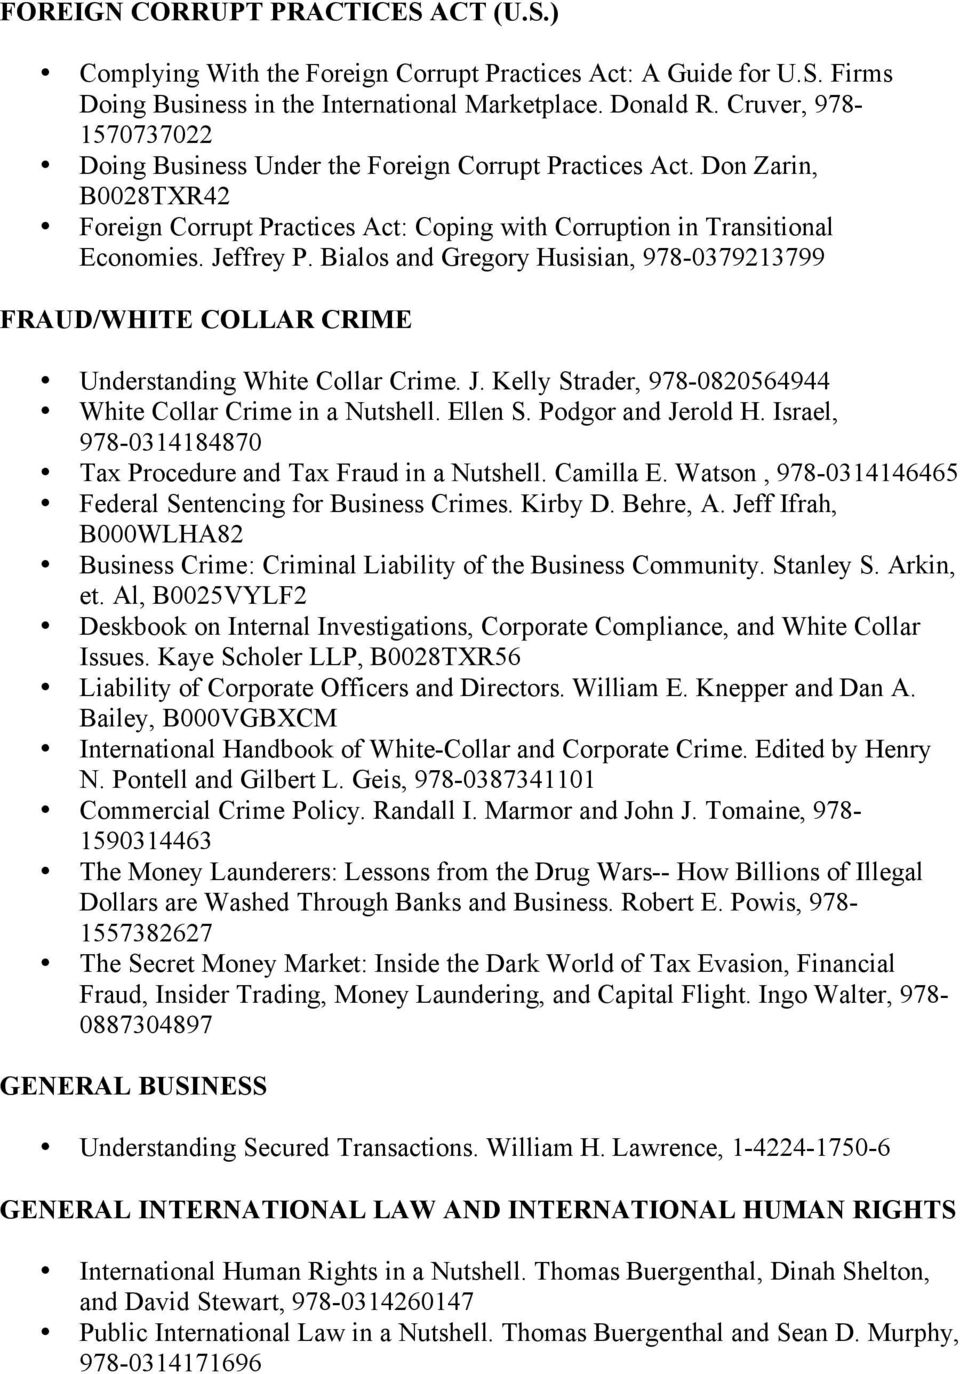 Bialos and Gregory Husisian, 978-0379213799 FRAUD/WHITE COLLAR CRIME Understanding White Collar Crime. J. Kelly Strader, 978-0820564944 White Collar Crime in a Nutshell. Ellen S. Podgor and Jerold H.